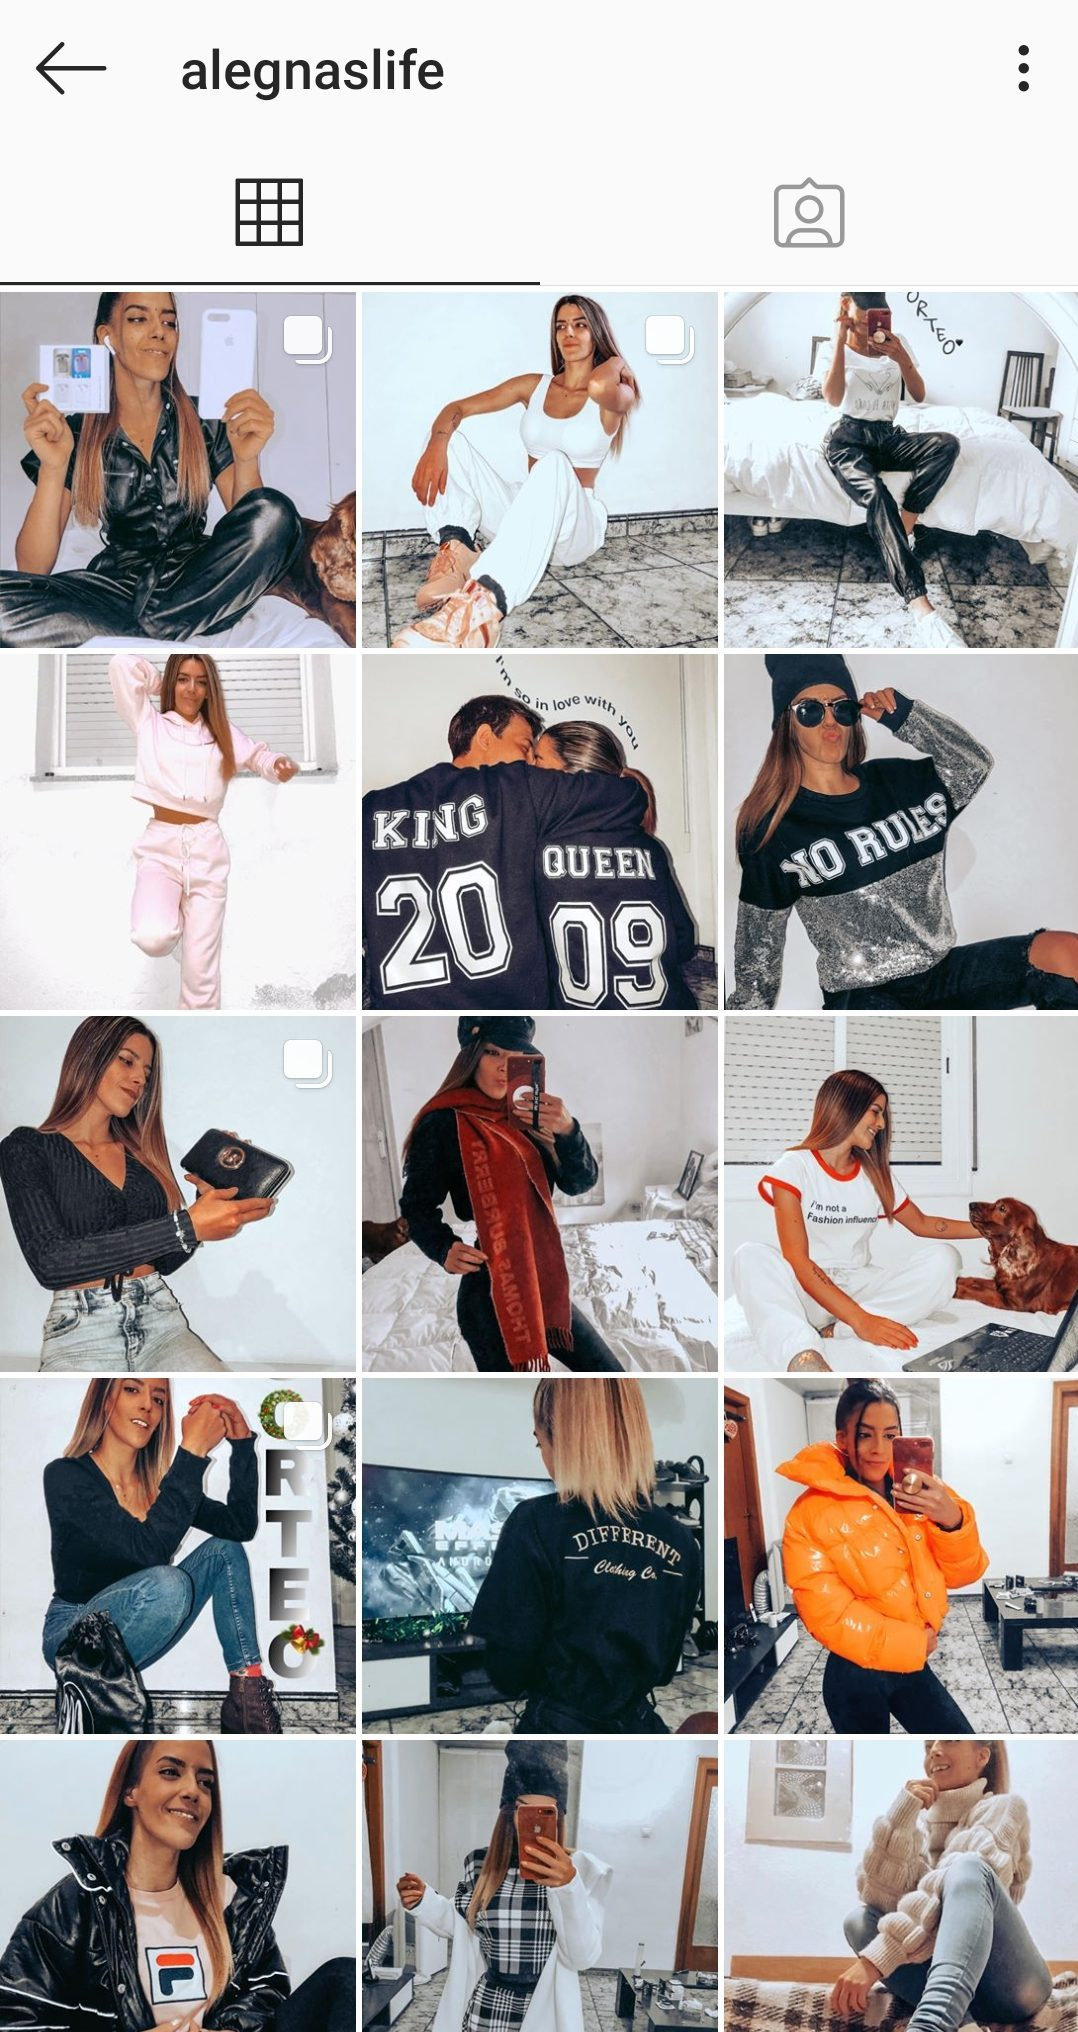 Tendencias de Instagram en 2020 - microinfluencer elgnaslife